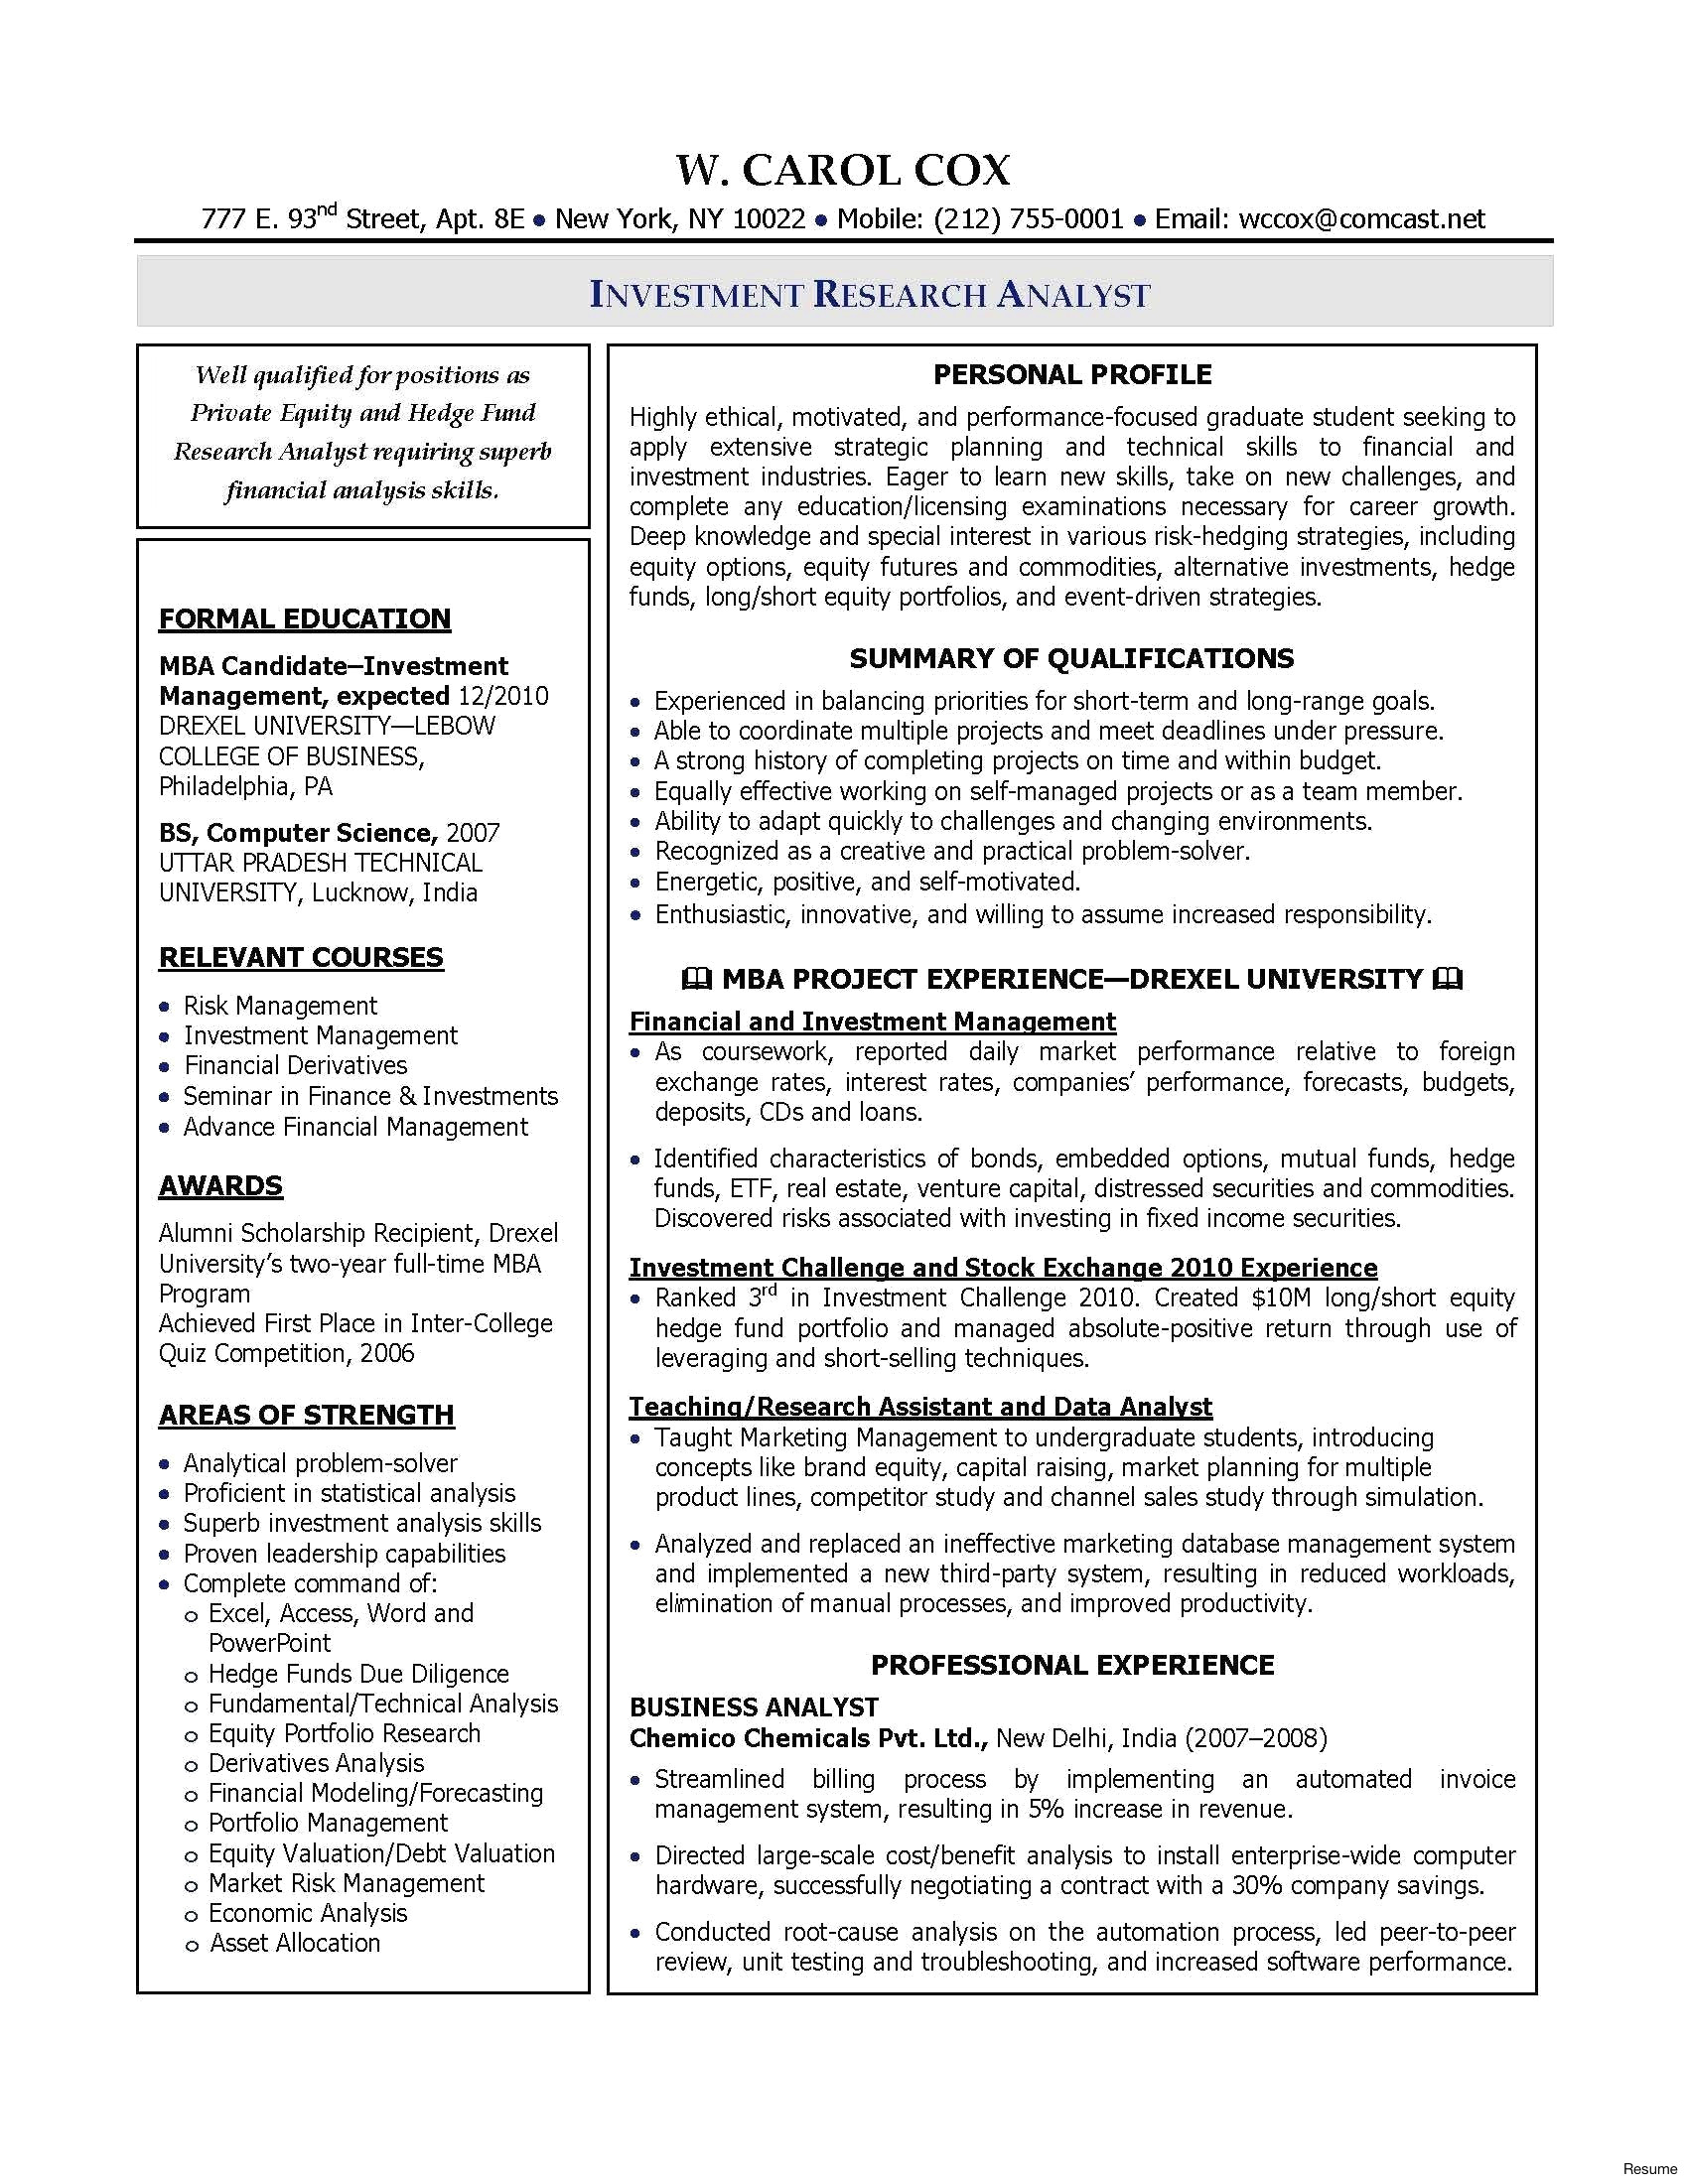 Resume Template for Mba Graduates - Business Analyst Jobs